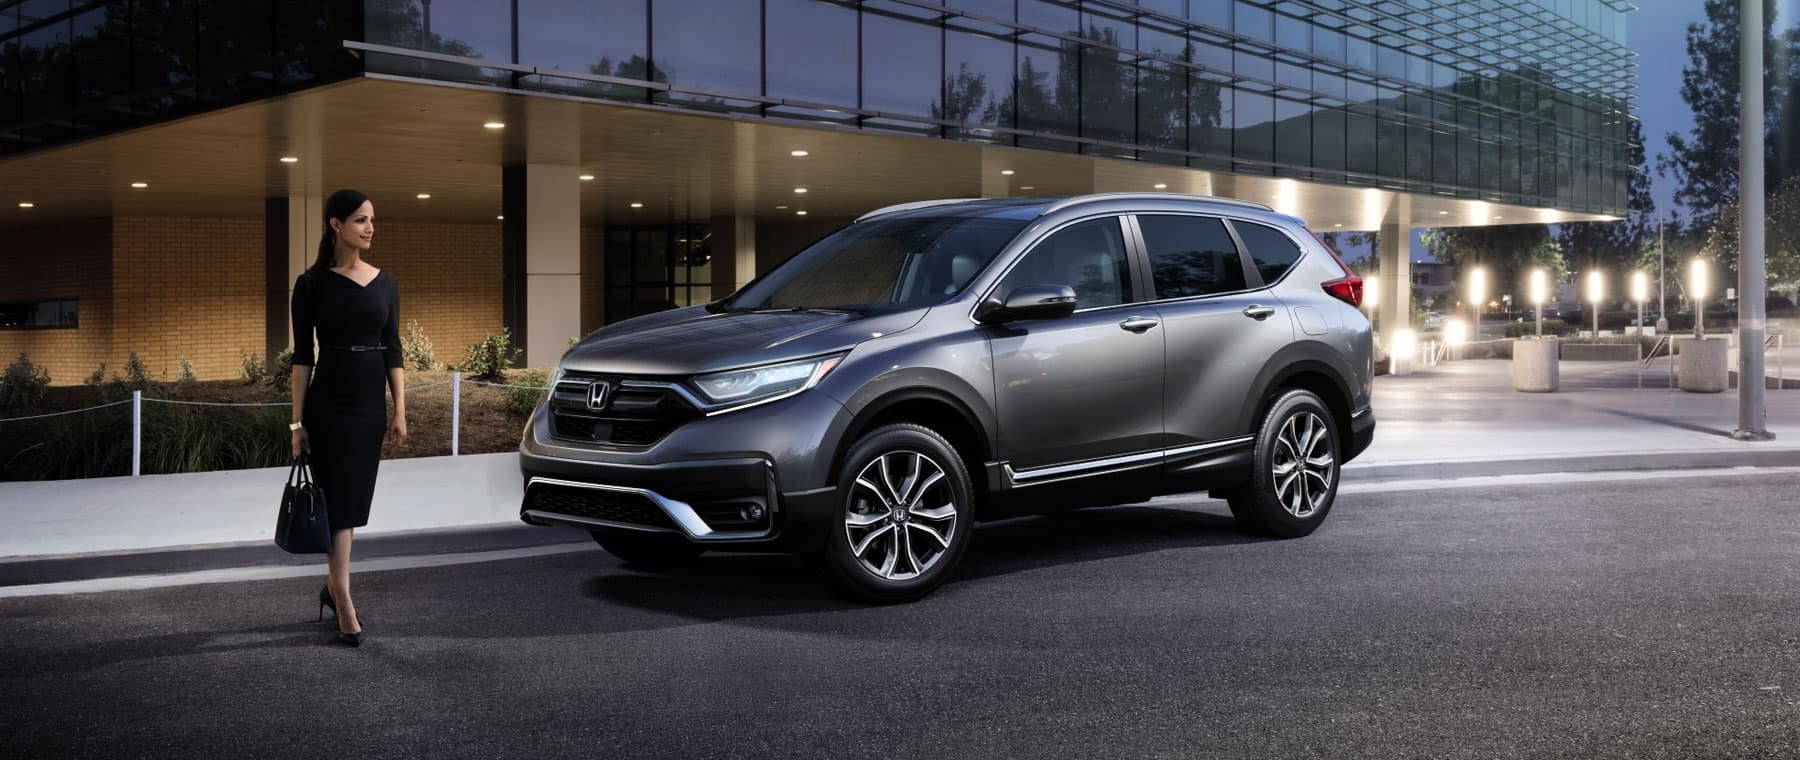 crv honda of lincoln